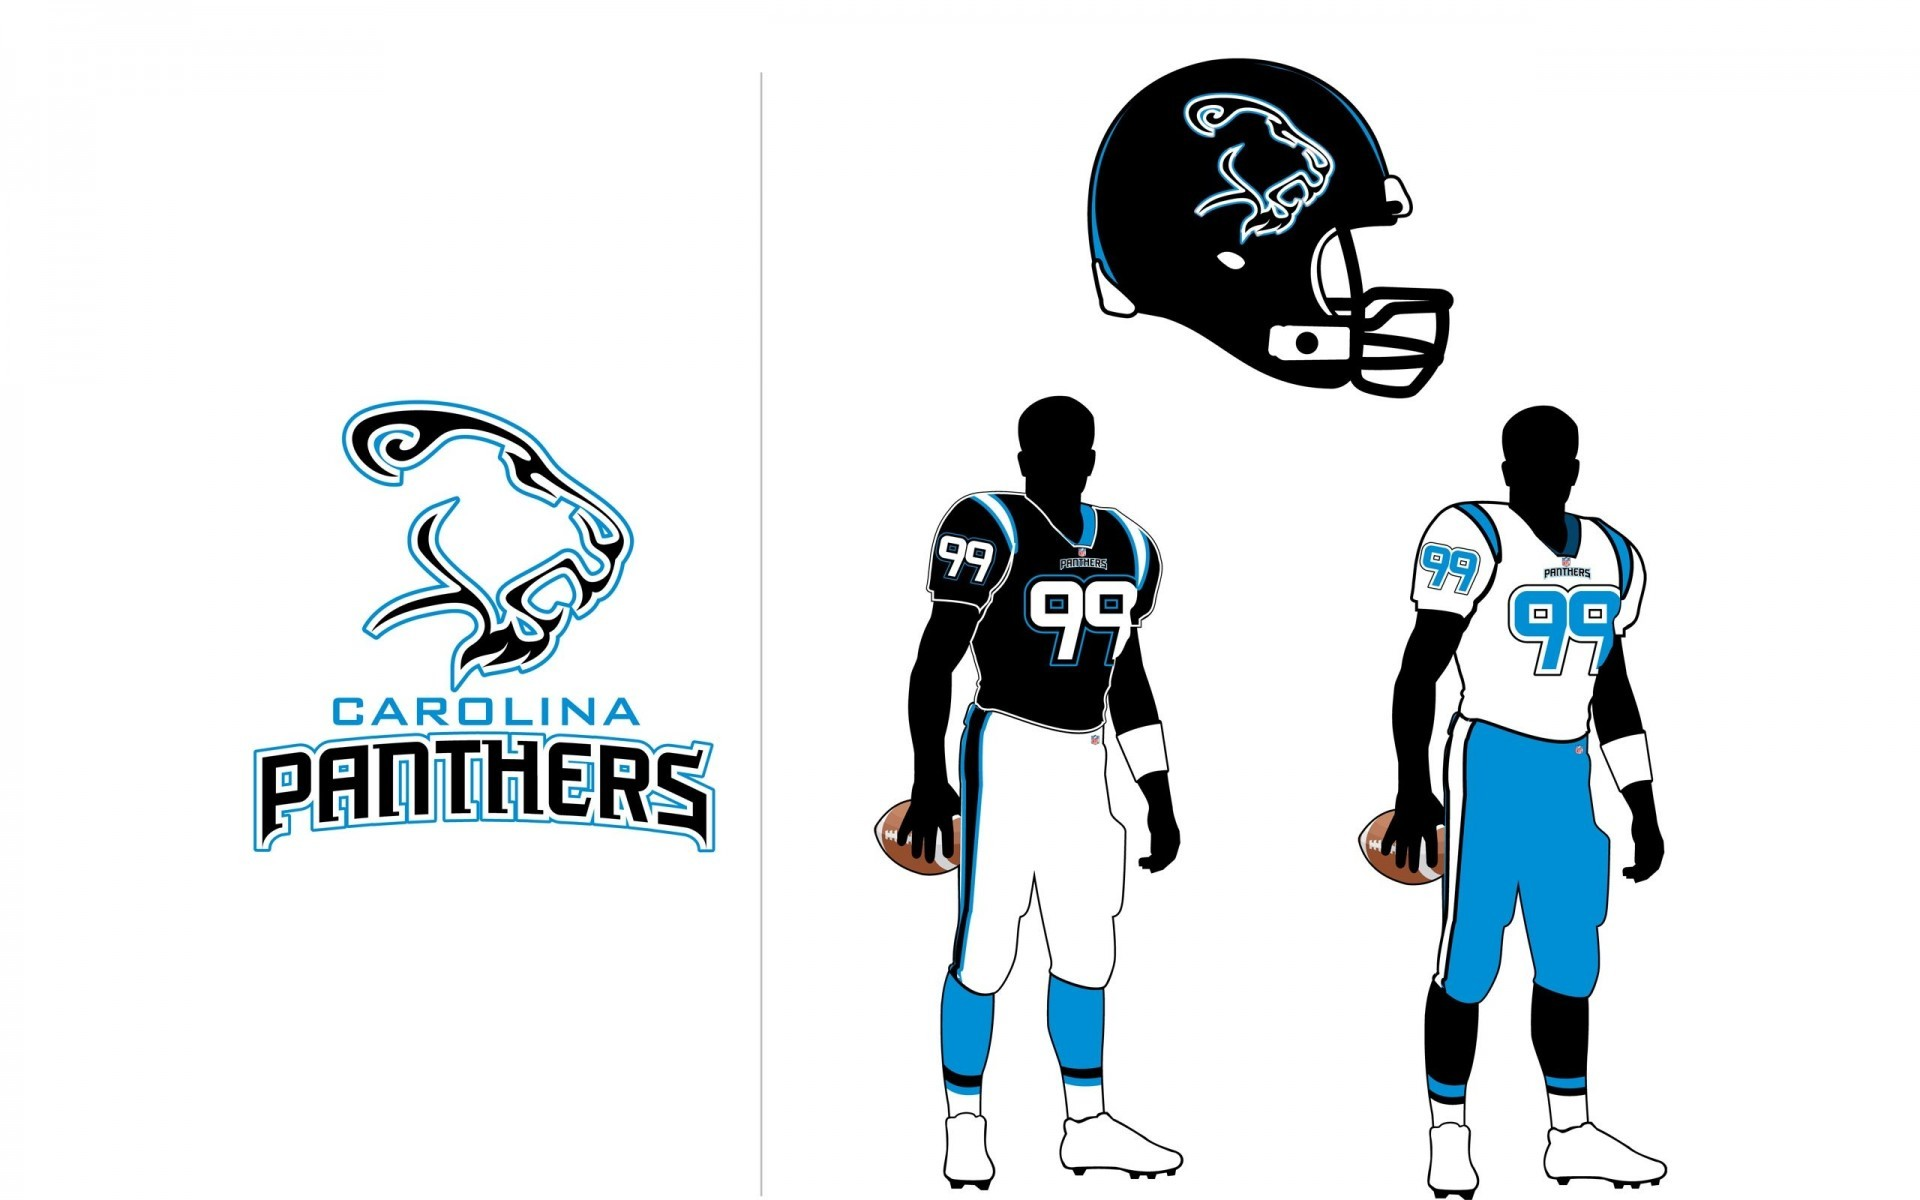 1920x1200 CAROLINA PANTHERS nfl football g wallpaper |  | 157868 |  WallpaperUP